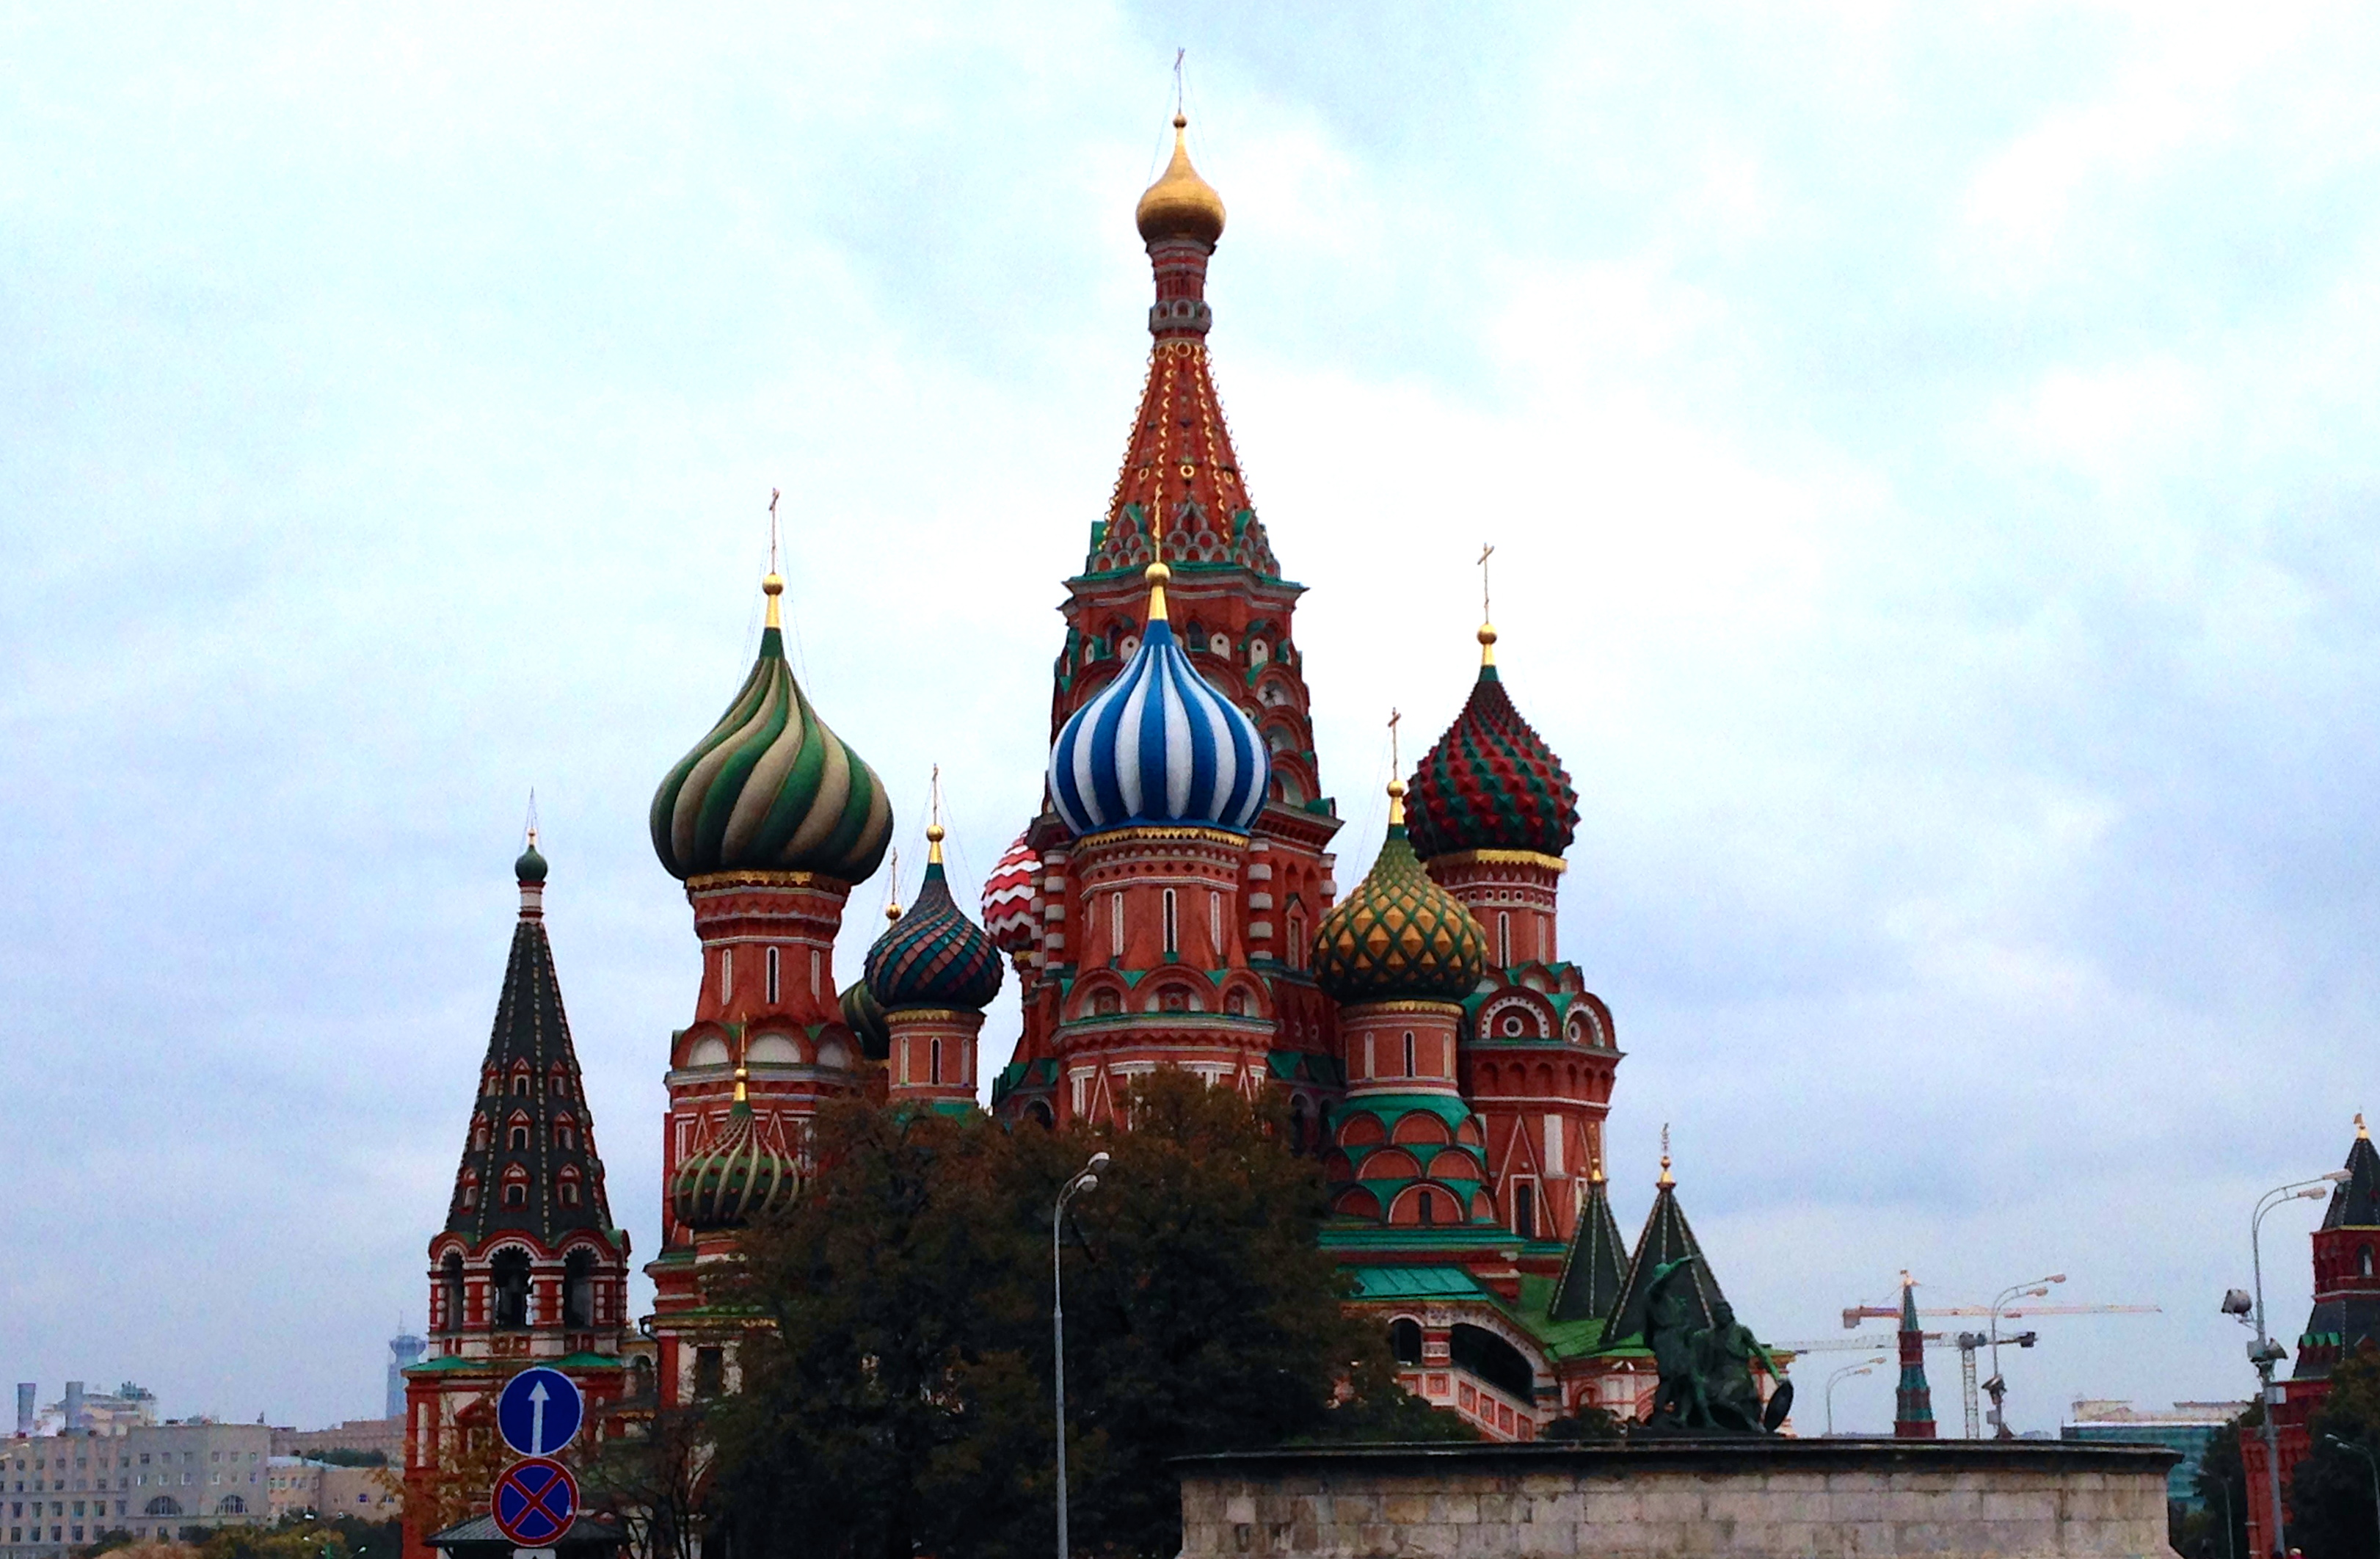 ...finally we arrived at the red square where we were stunned by the beauty of the st. basil's cathedral...